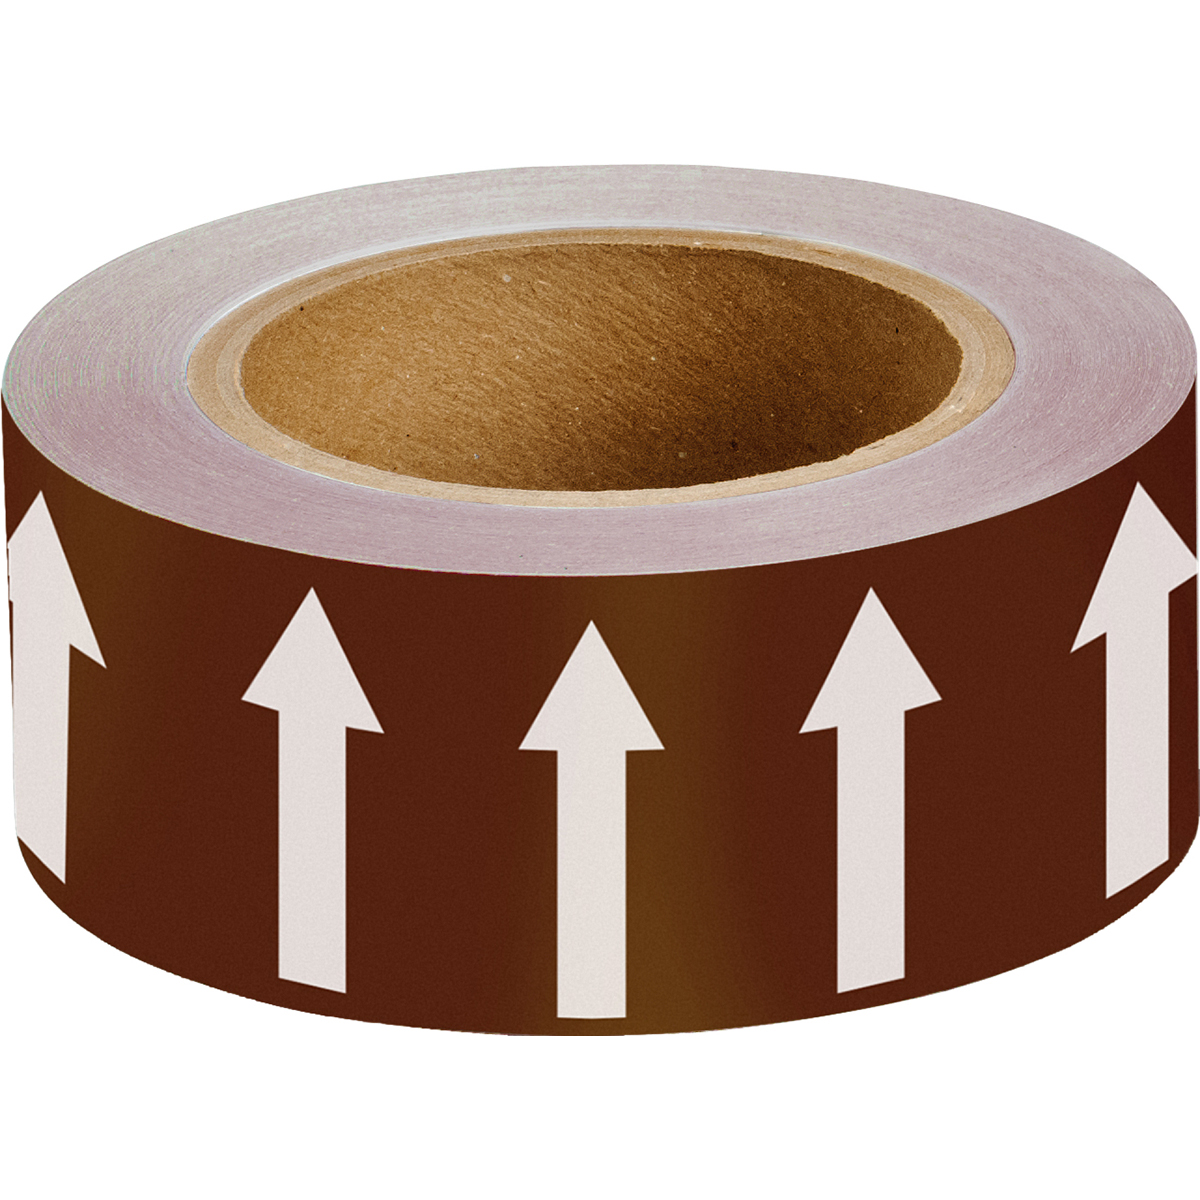 White on Brown 50 mm Directional Flow Arrow Tape